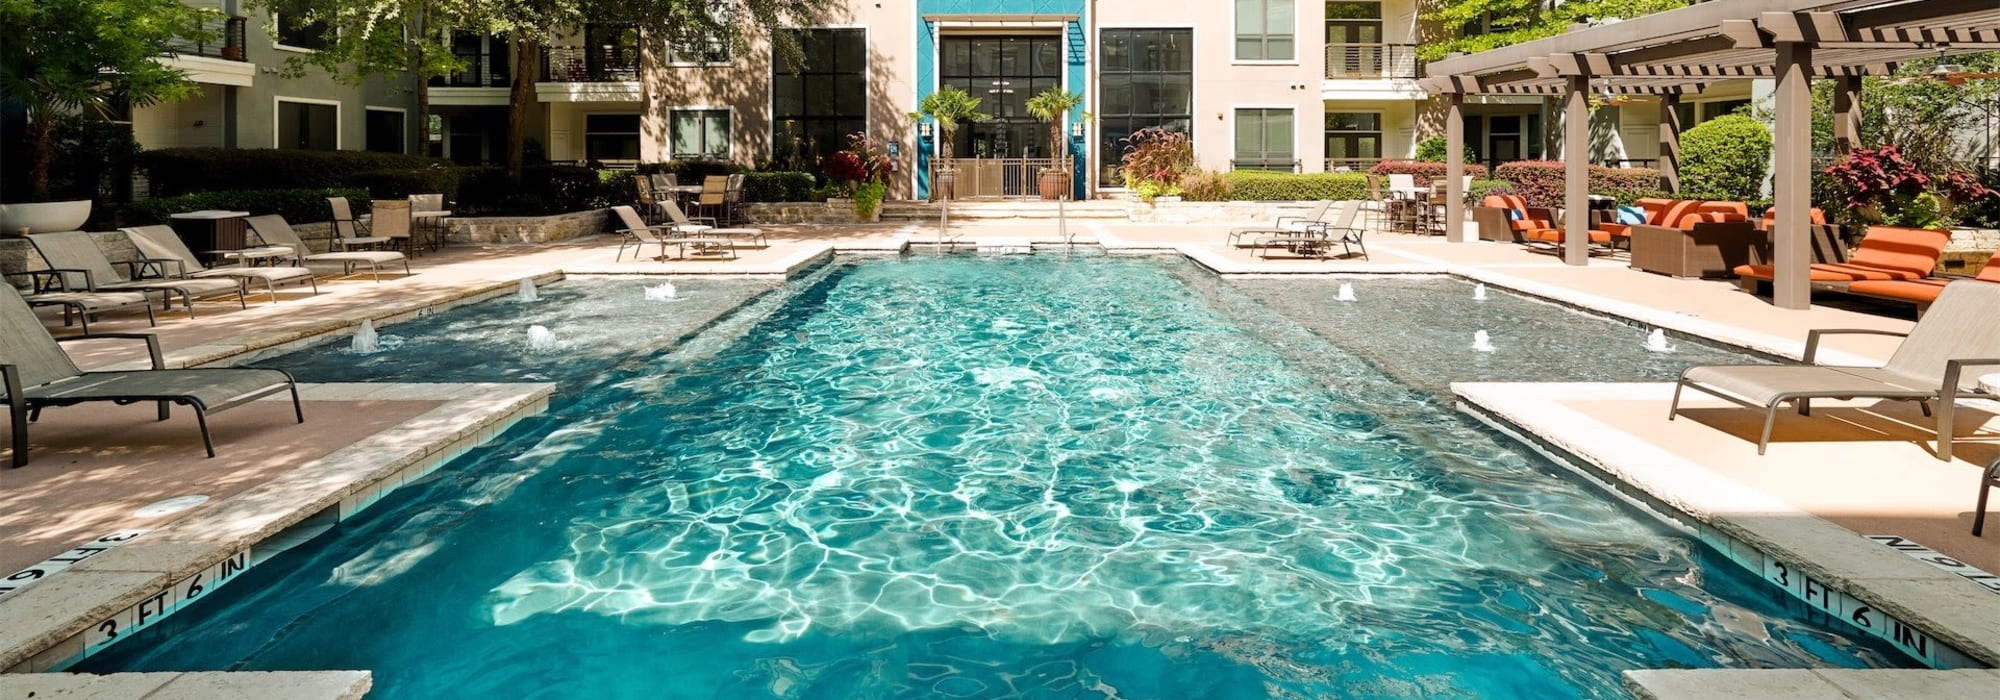 Resort-style swimming pool at Seville Uptown in Dallas, Texas